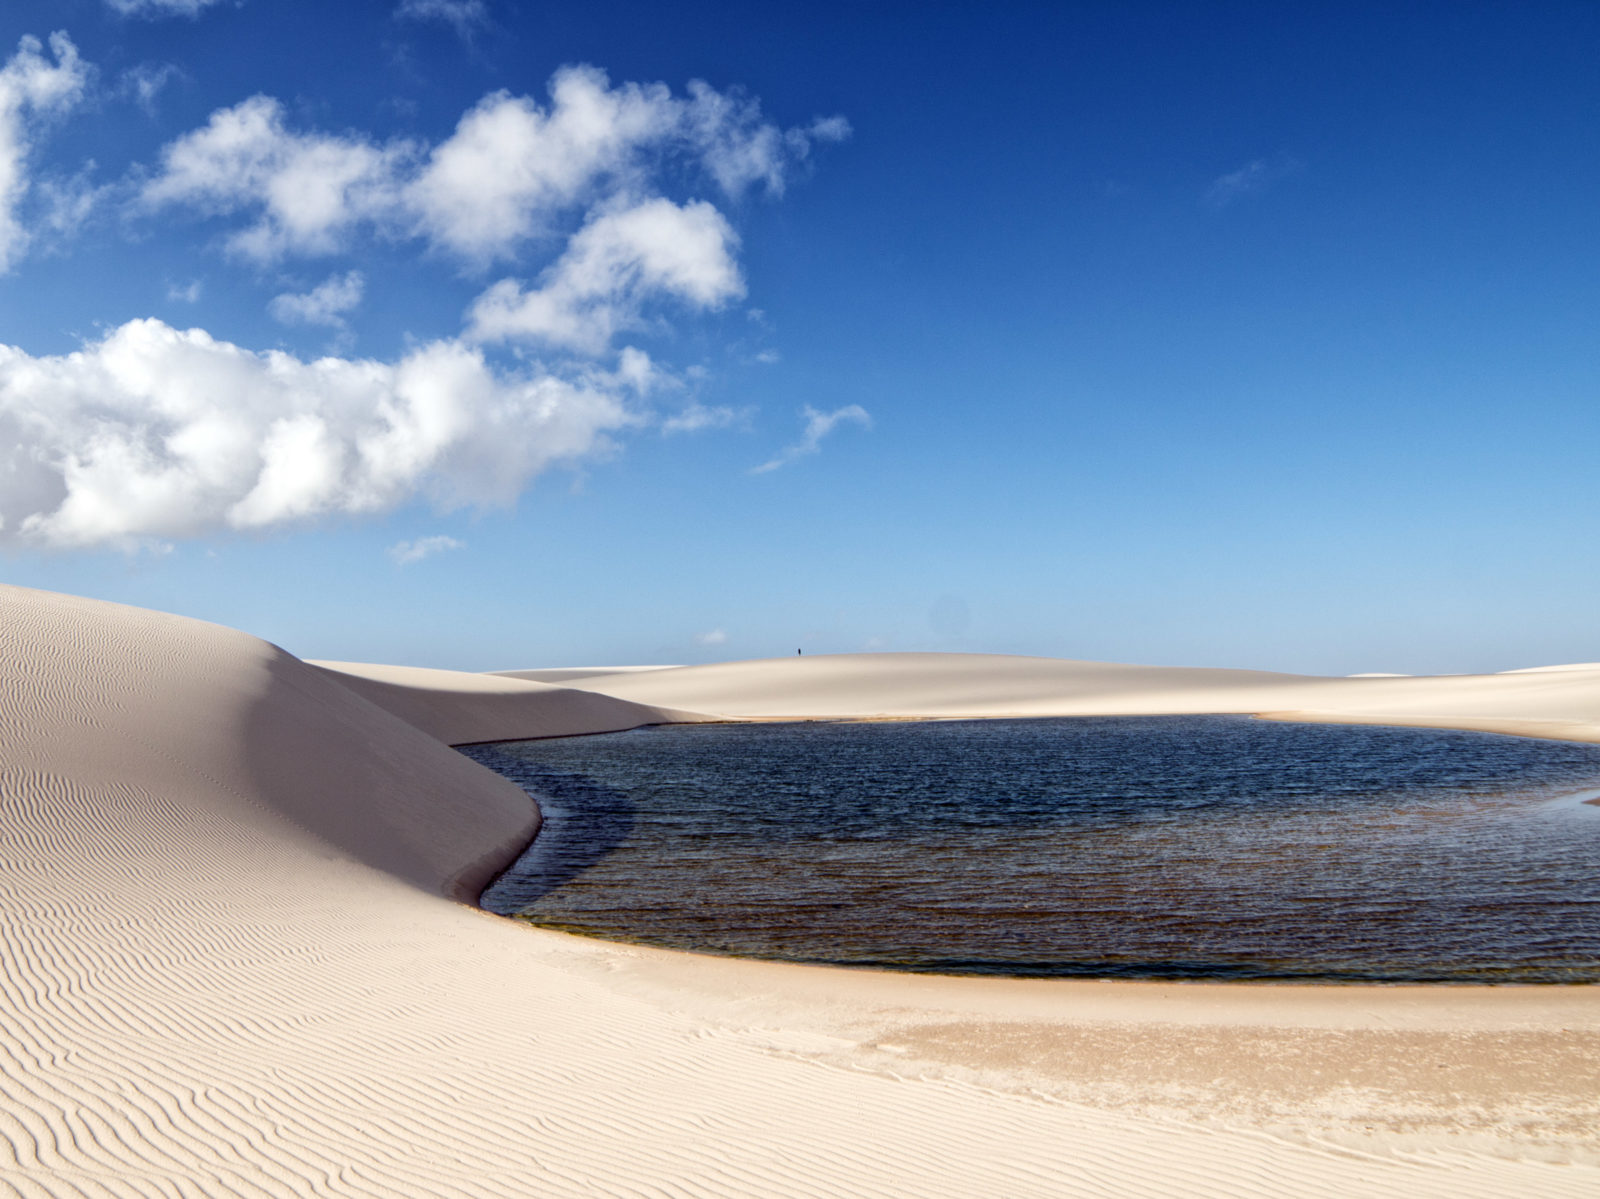 THE DUNES OF LENCOIS MARANHENSES